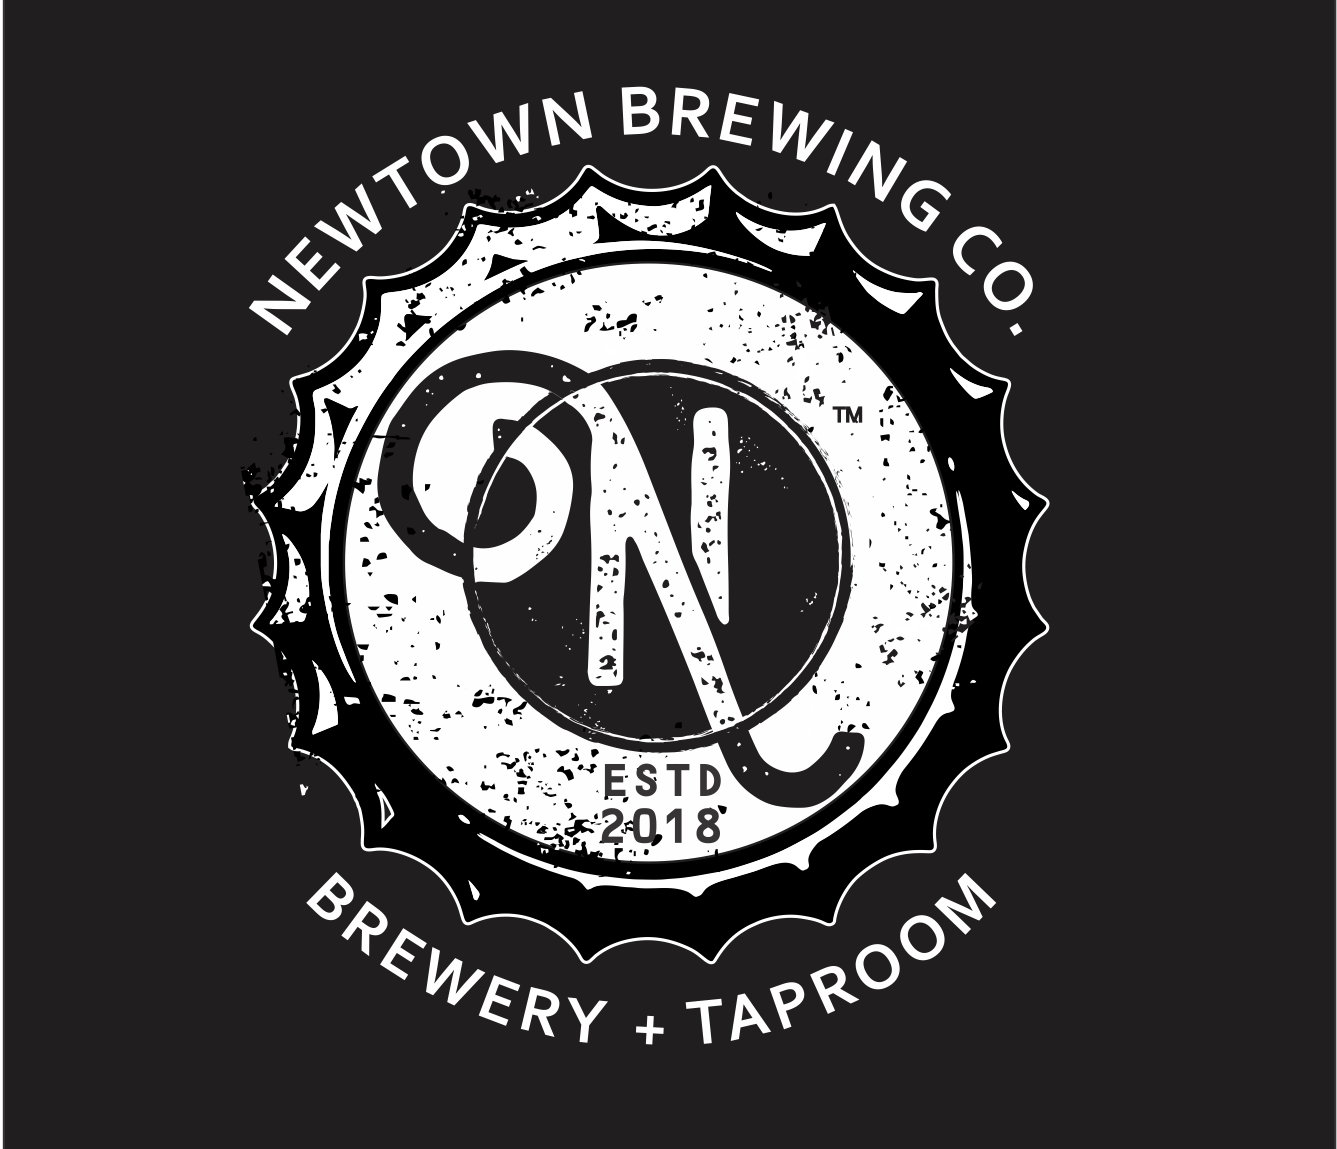 Newtown Brewing Company